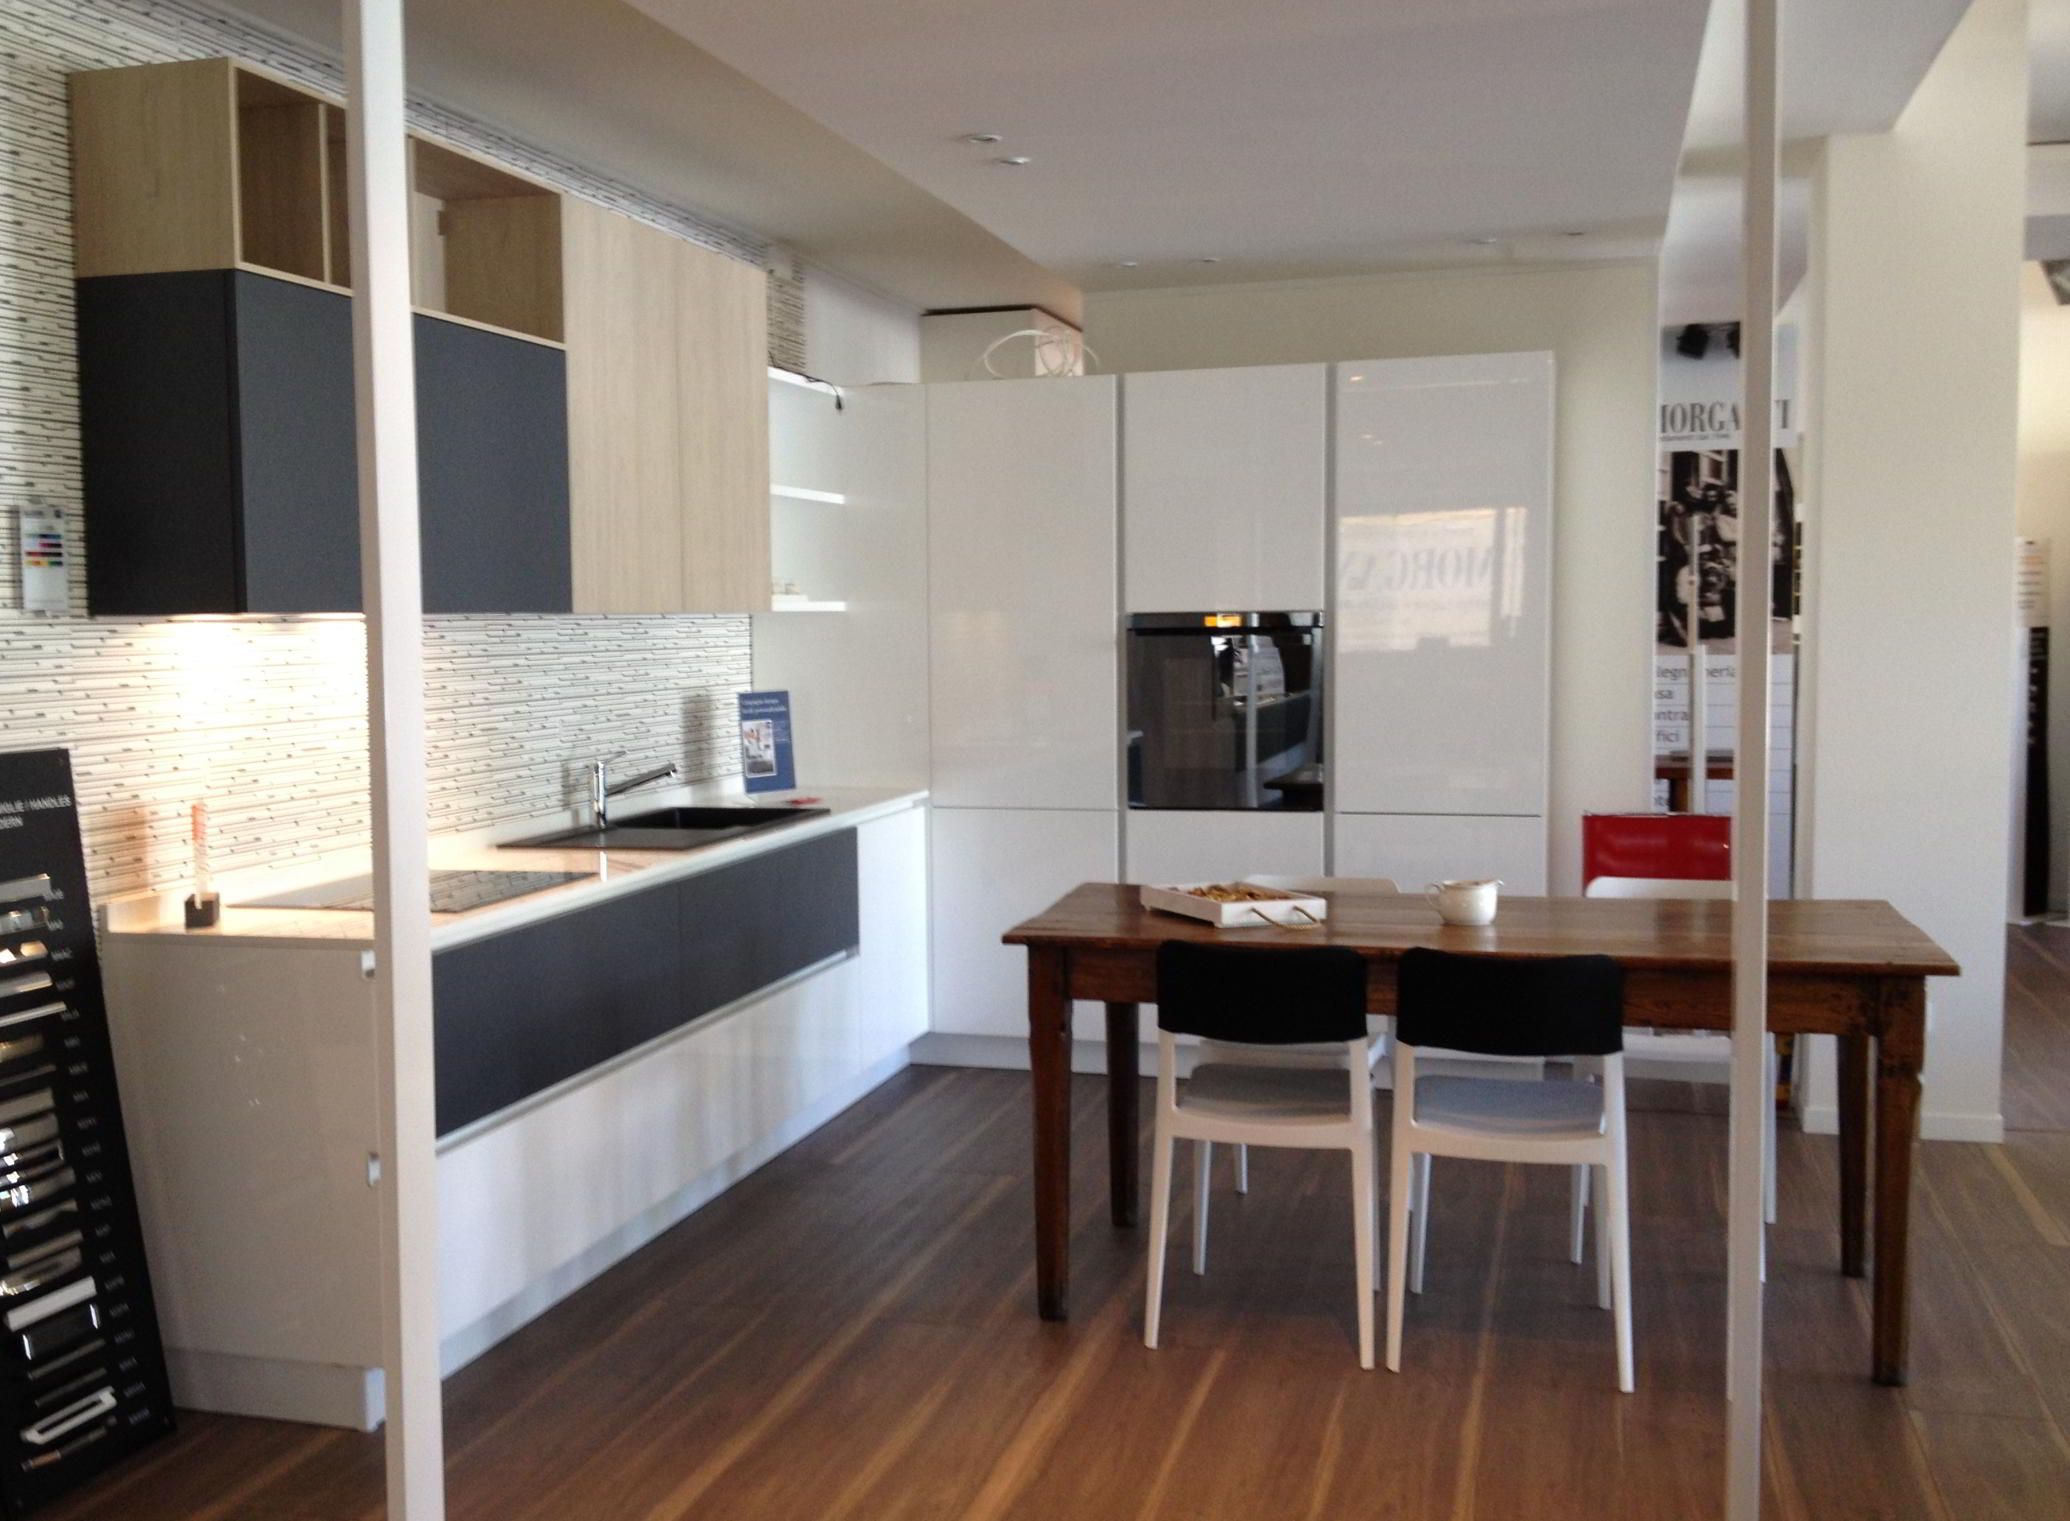 1000+ images about Cucine - kitchens - Кухня on Pinterest